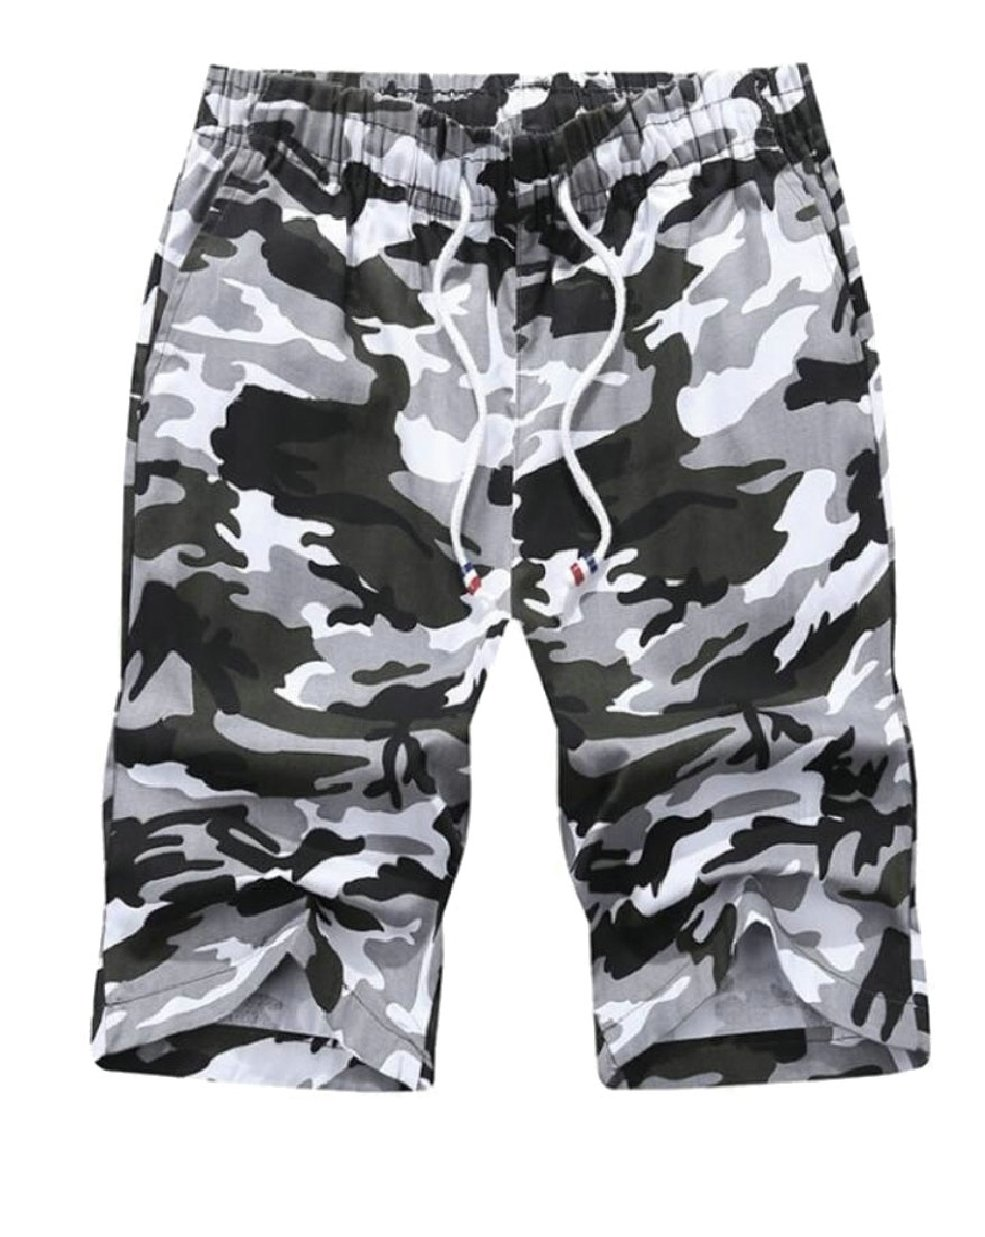 LEISHOP Mens Camouflage Printing Quick Dry Beach Board Shorts Trunks